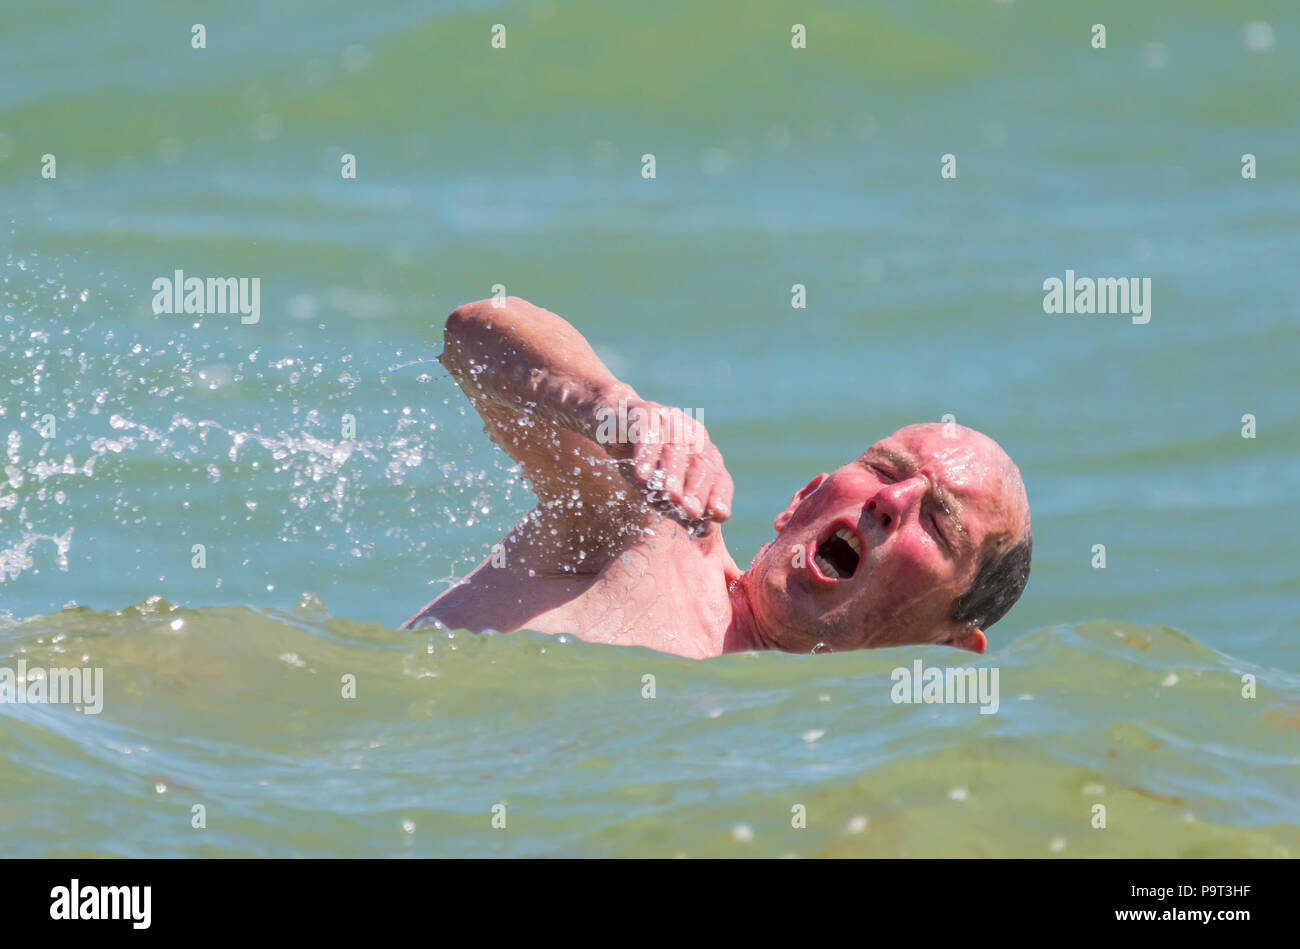 Man swimming in the sea in the UK with his head out of the water taking a breath. Man swimming in the ocean. - Stock Image